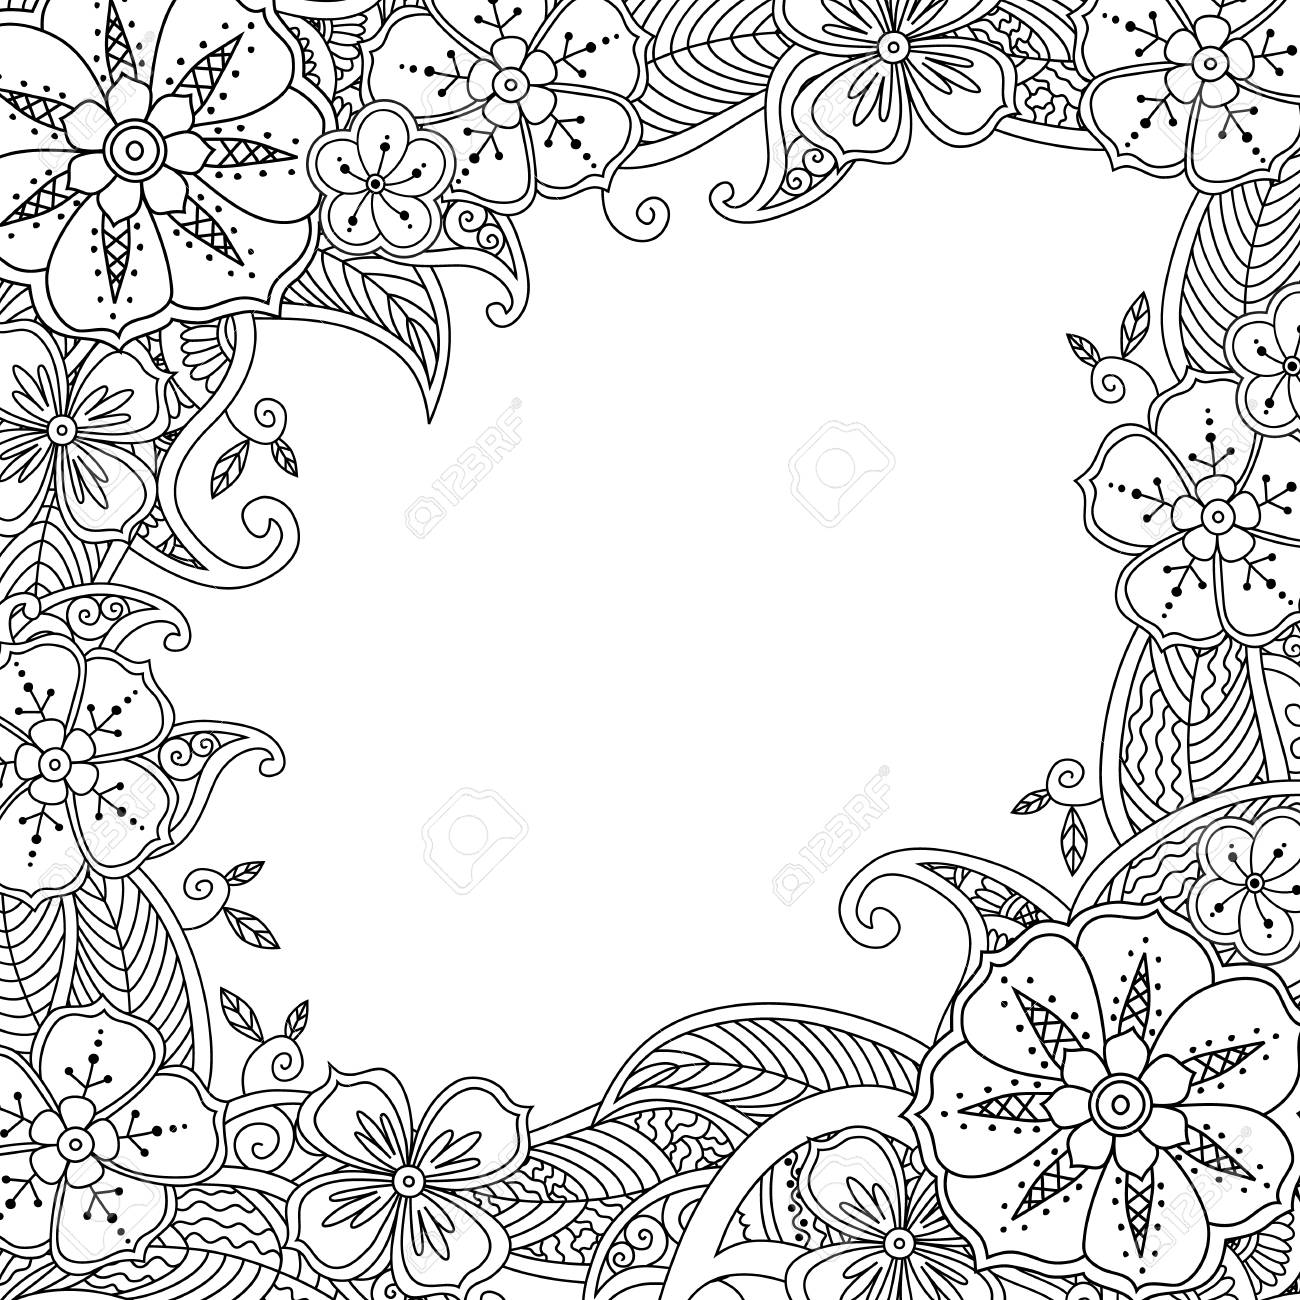 Floral Hand Drawn Square Frame In Inspired Style Doodle Flowers Royalty Free Cliparts Vectors And Stock Illustration Image 79282837